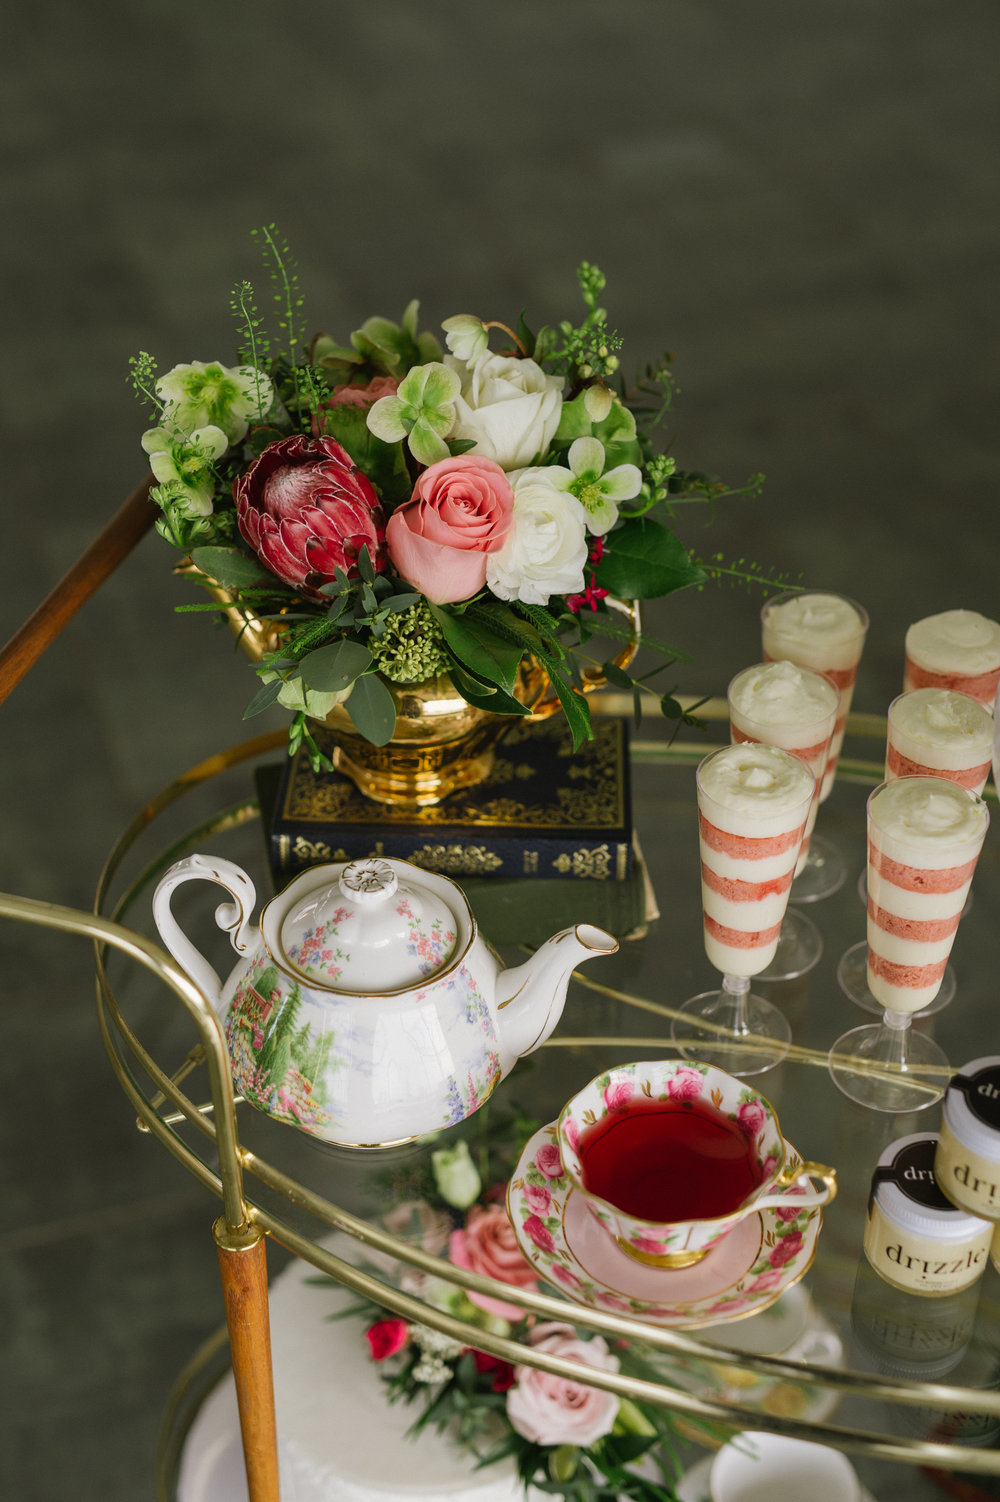 Calgary_Wedding_Photography_Spruce_Meadows_Bridal_Tea_2018_HR010.jpg